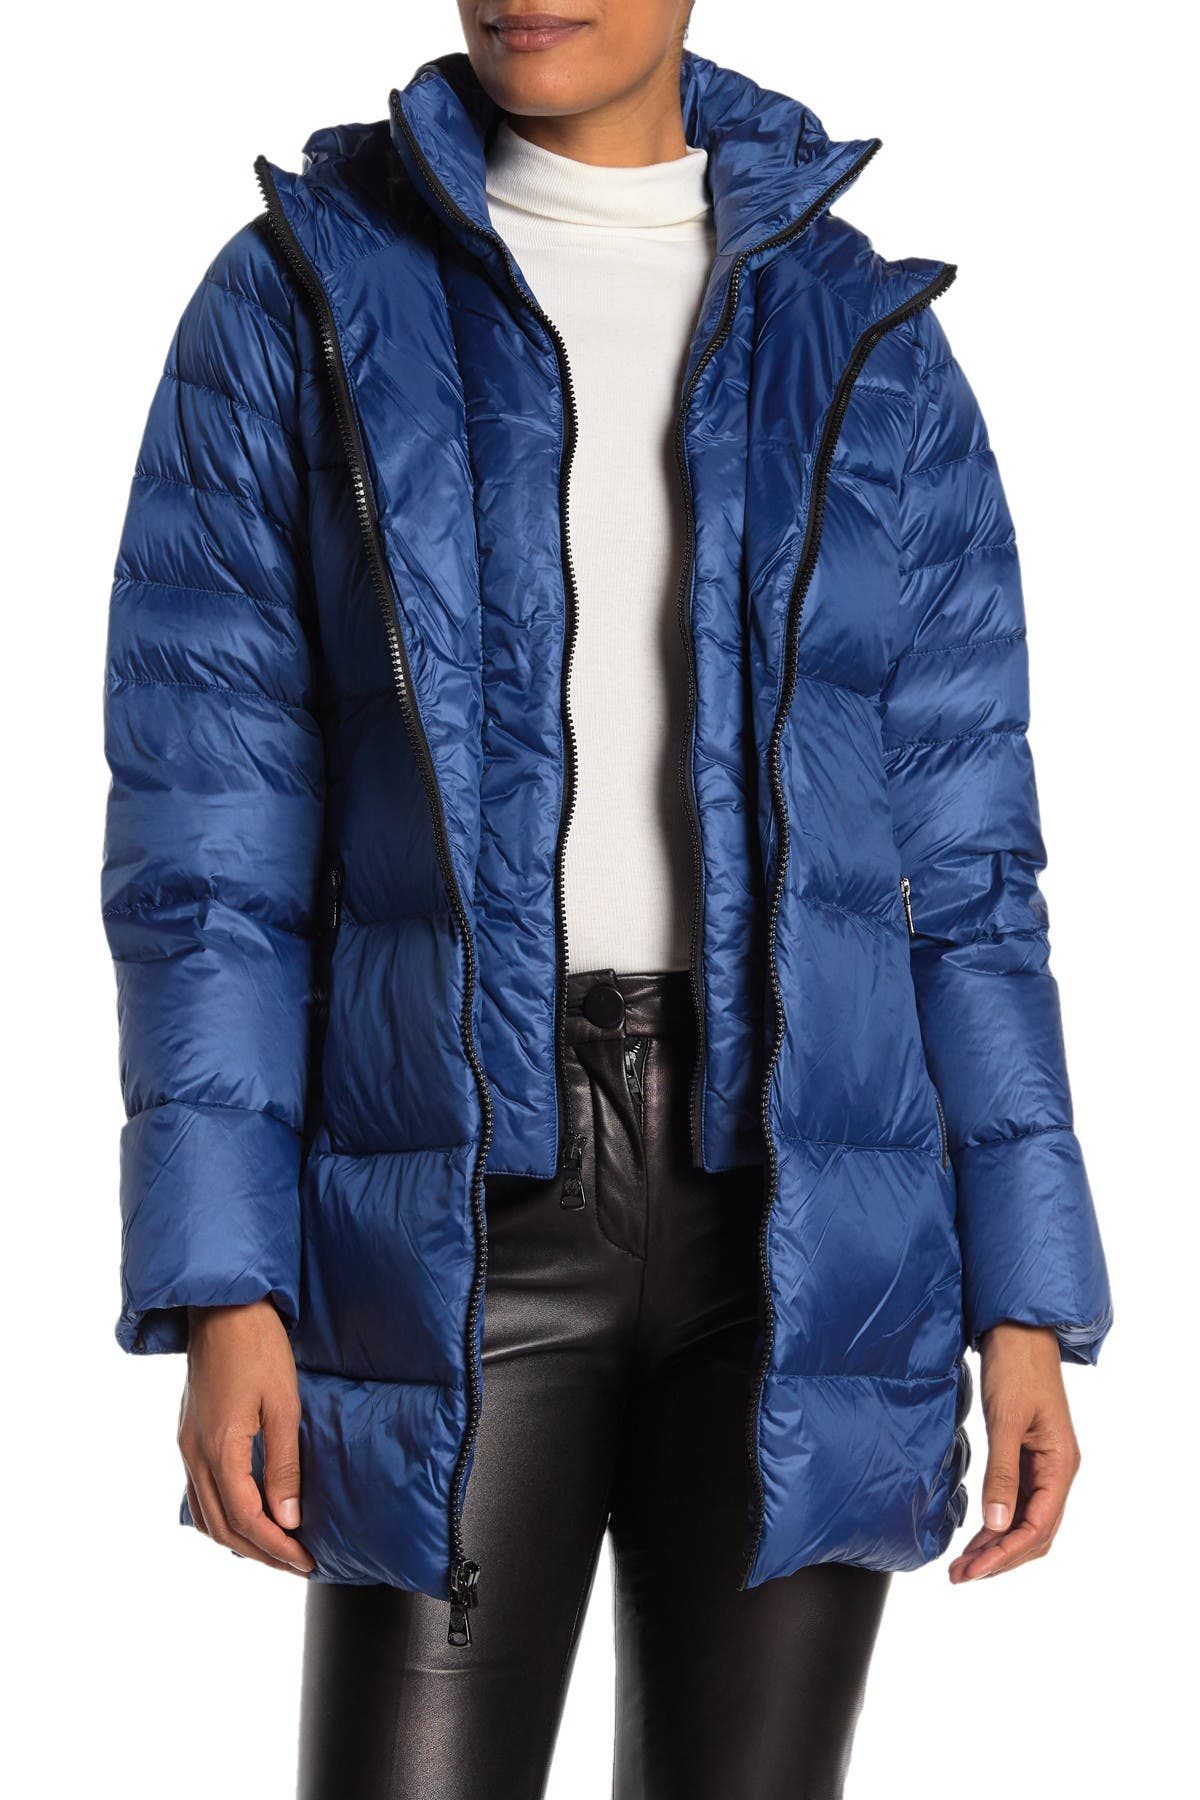 Vince Camuto Womens Packable Down Jacket